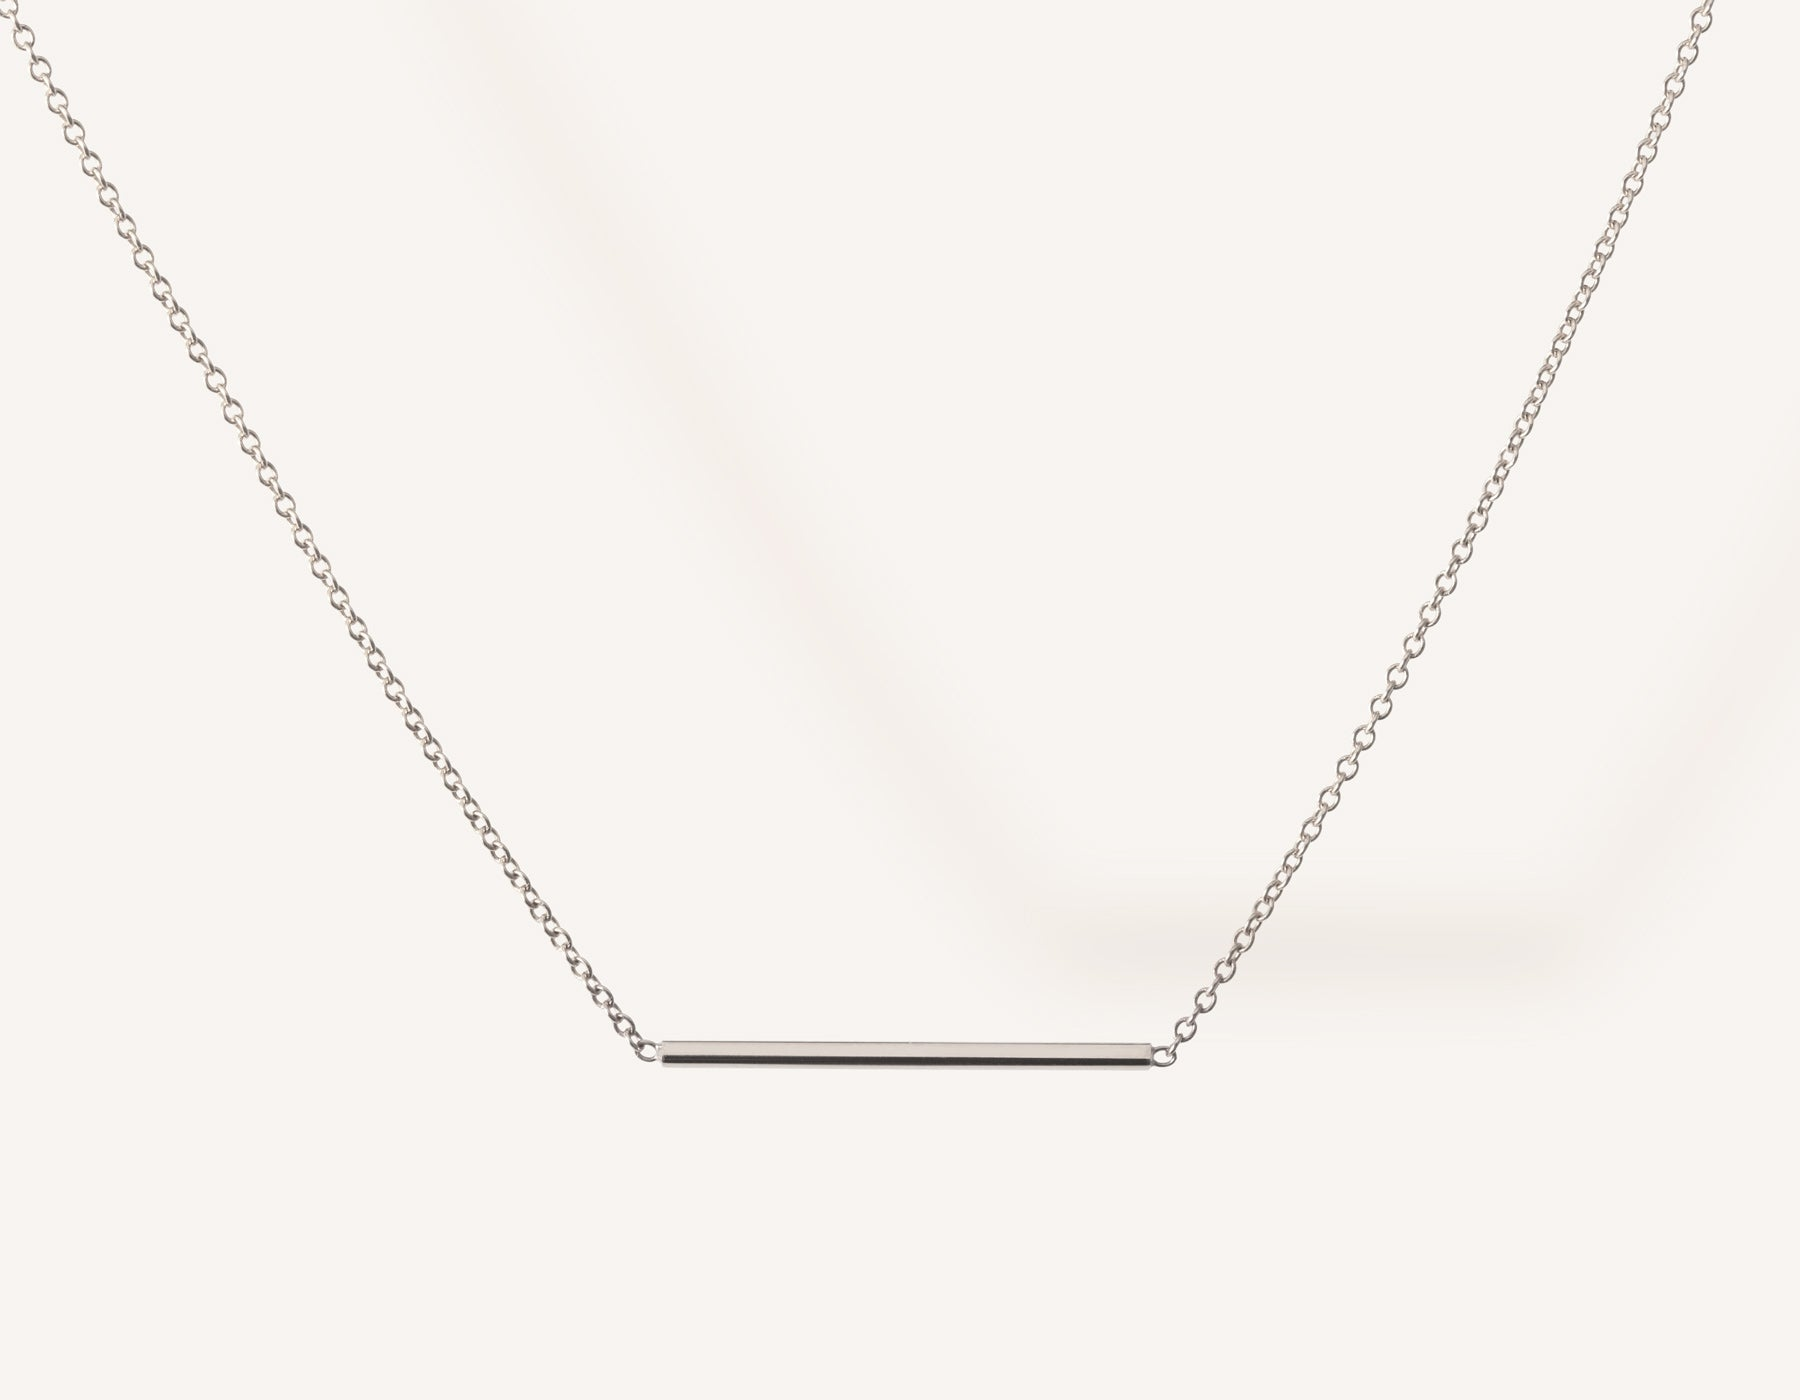 Simple classic Line Necklace 14k solid gold small rectangular bar thin chain spring ring clasp Vrai & Oro minimalist jewelry, 14K White Gold